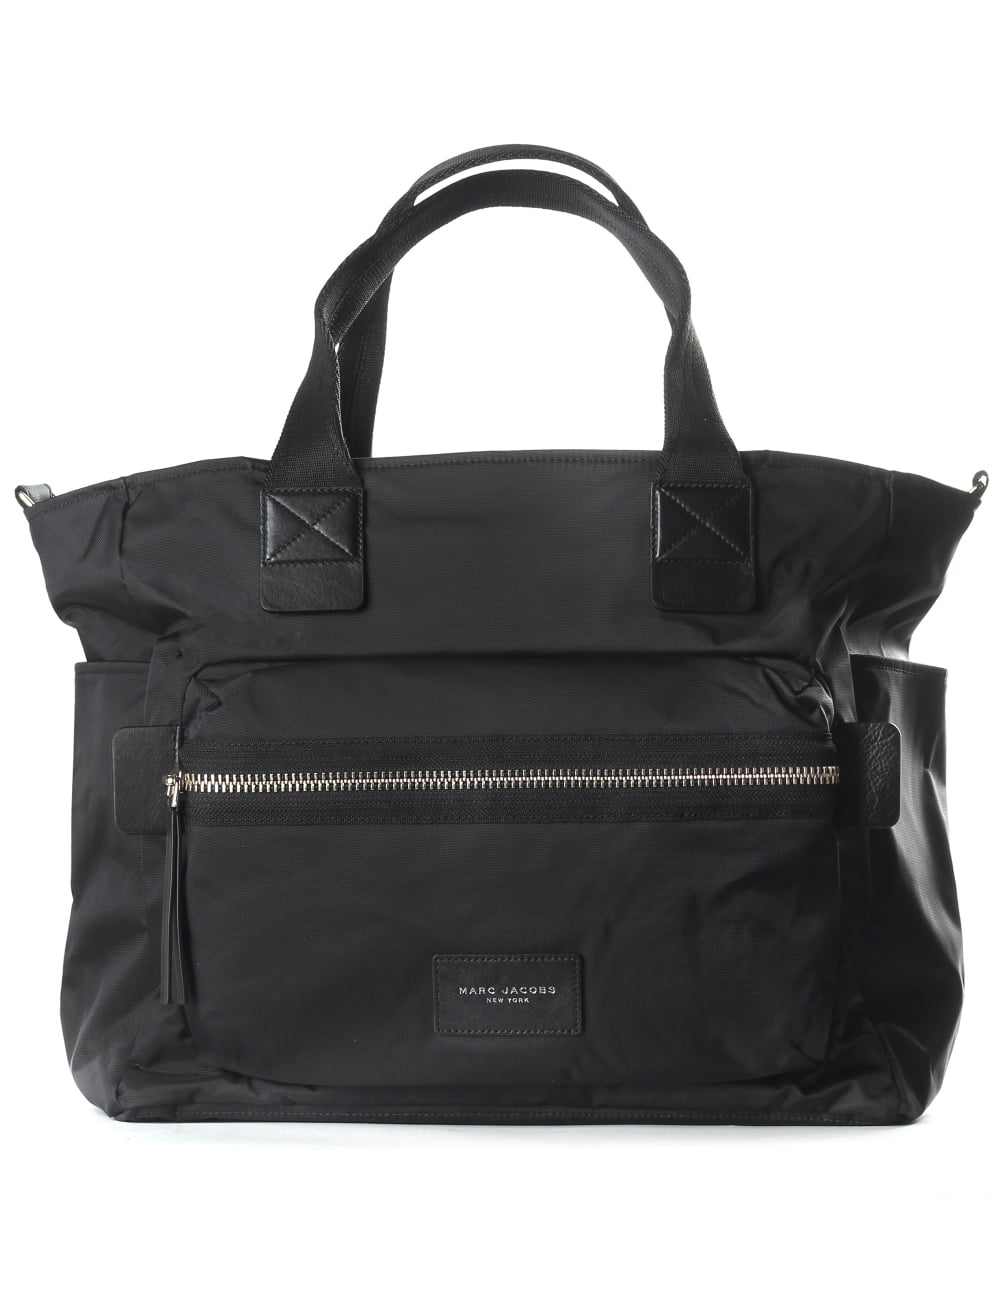 8c9fa227e124ba Marc Jacobs Women's Nylon Biker Baby Bag Black